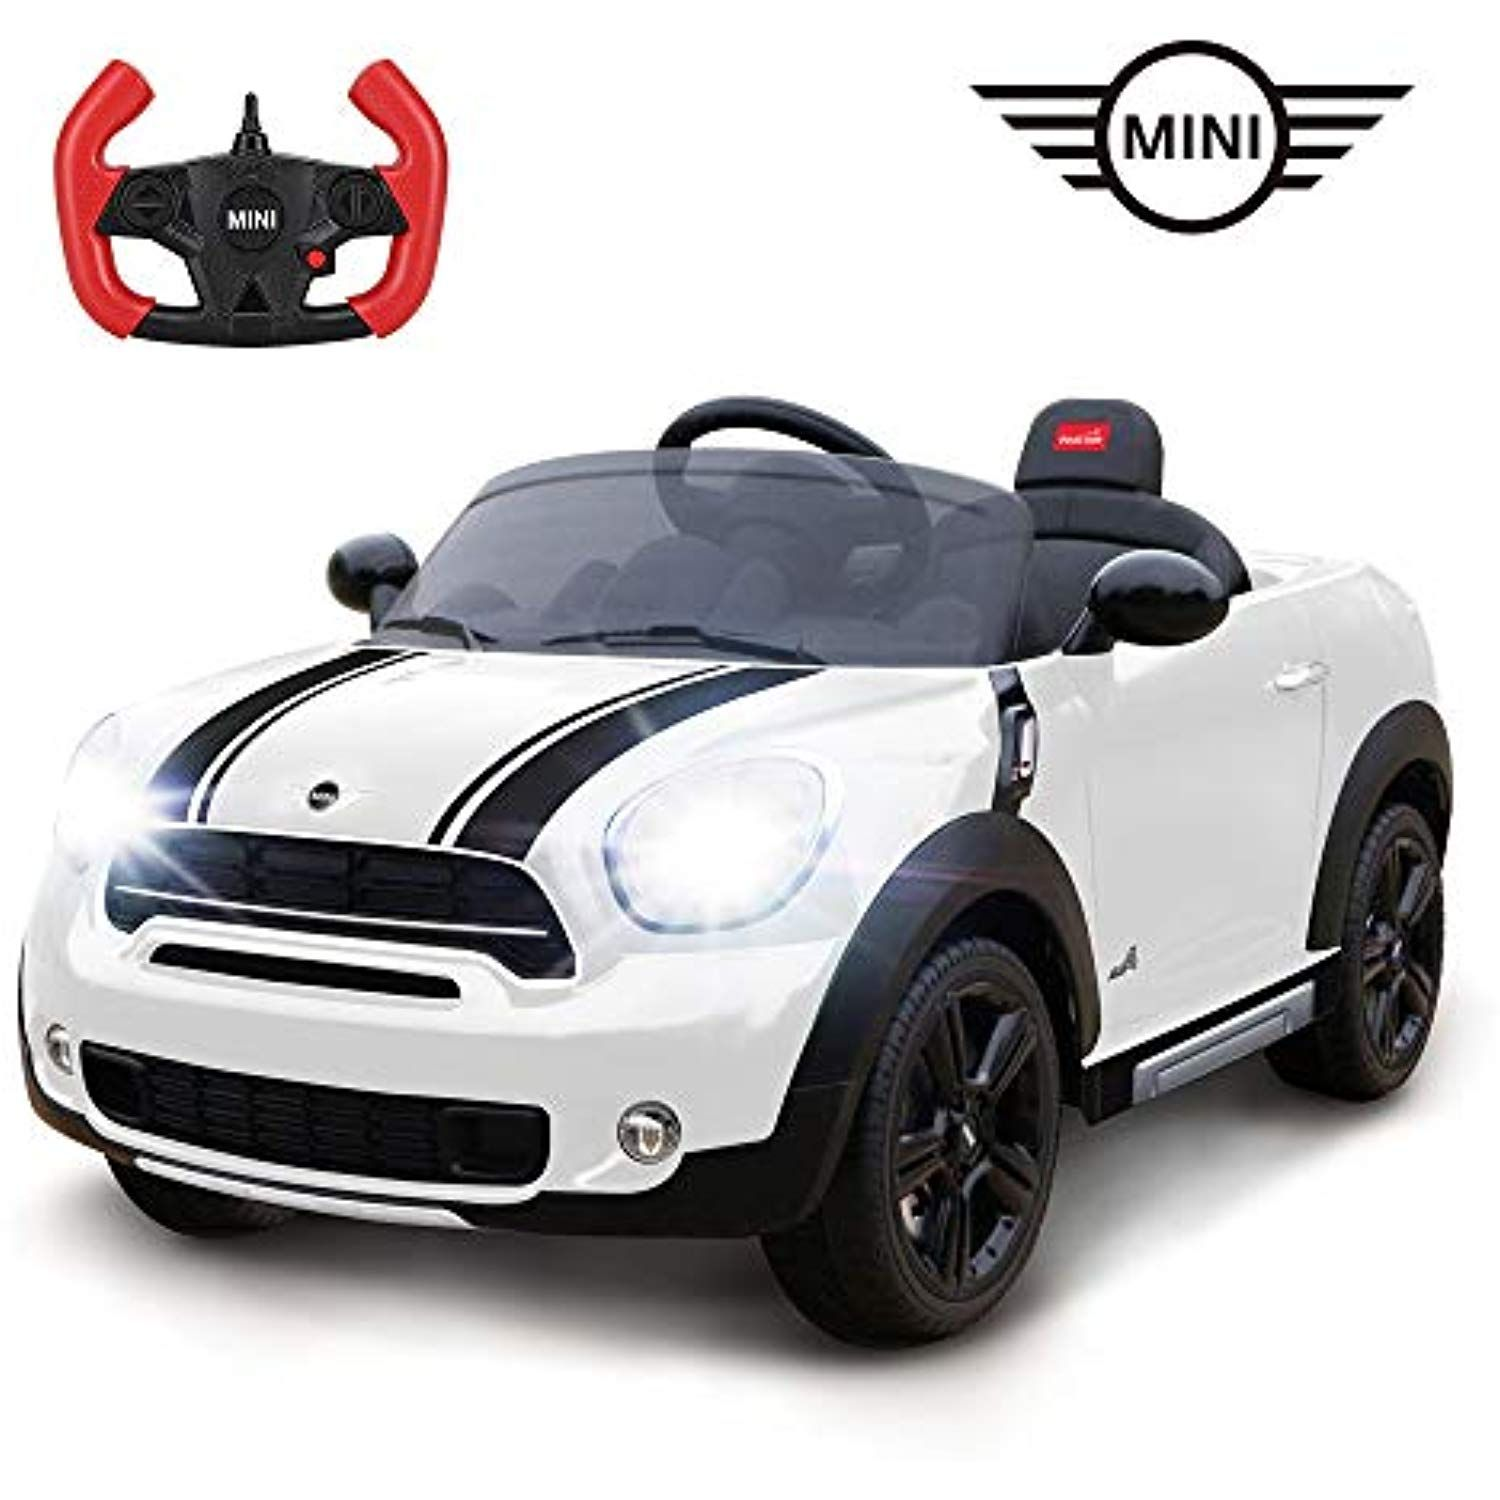 RASTAR Battery-Powered Kid's Ride-on Car, 12V Mini